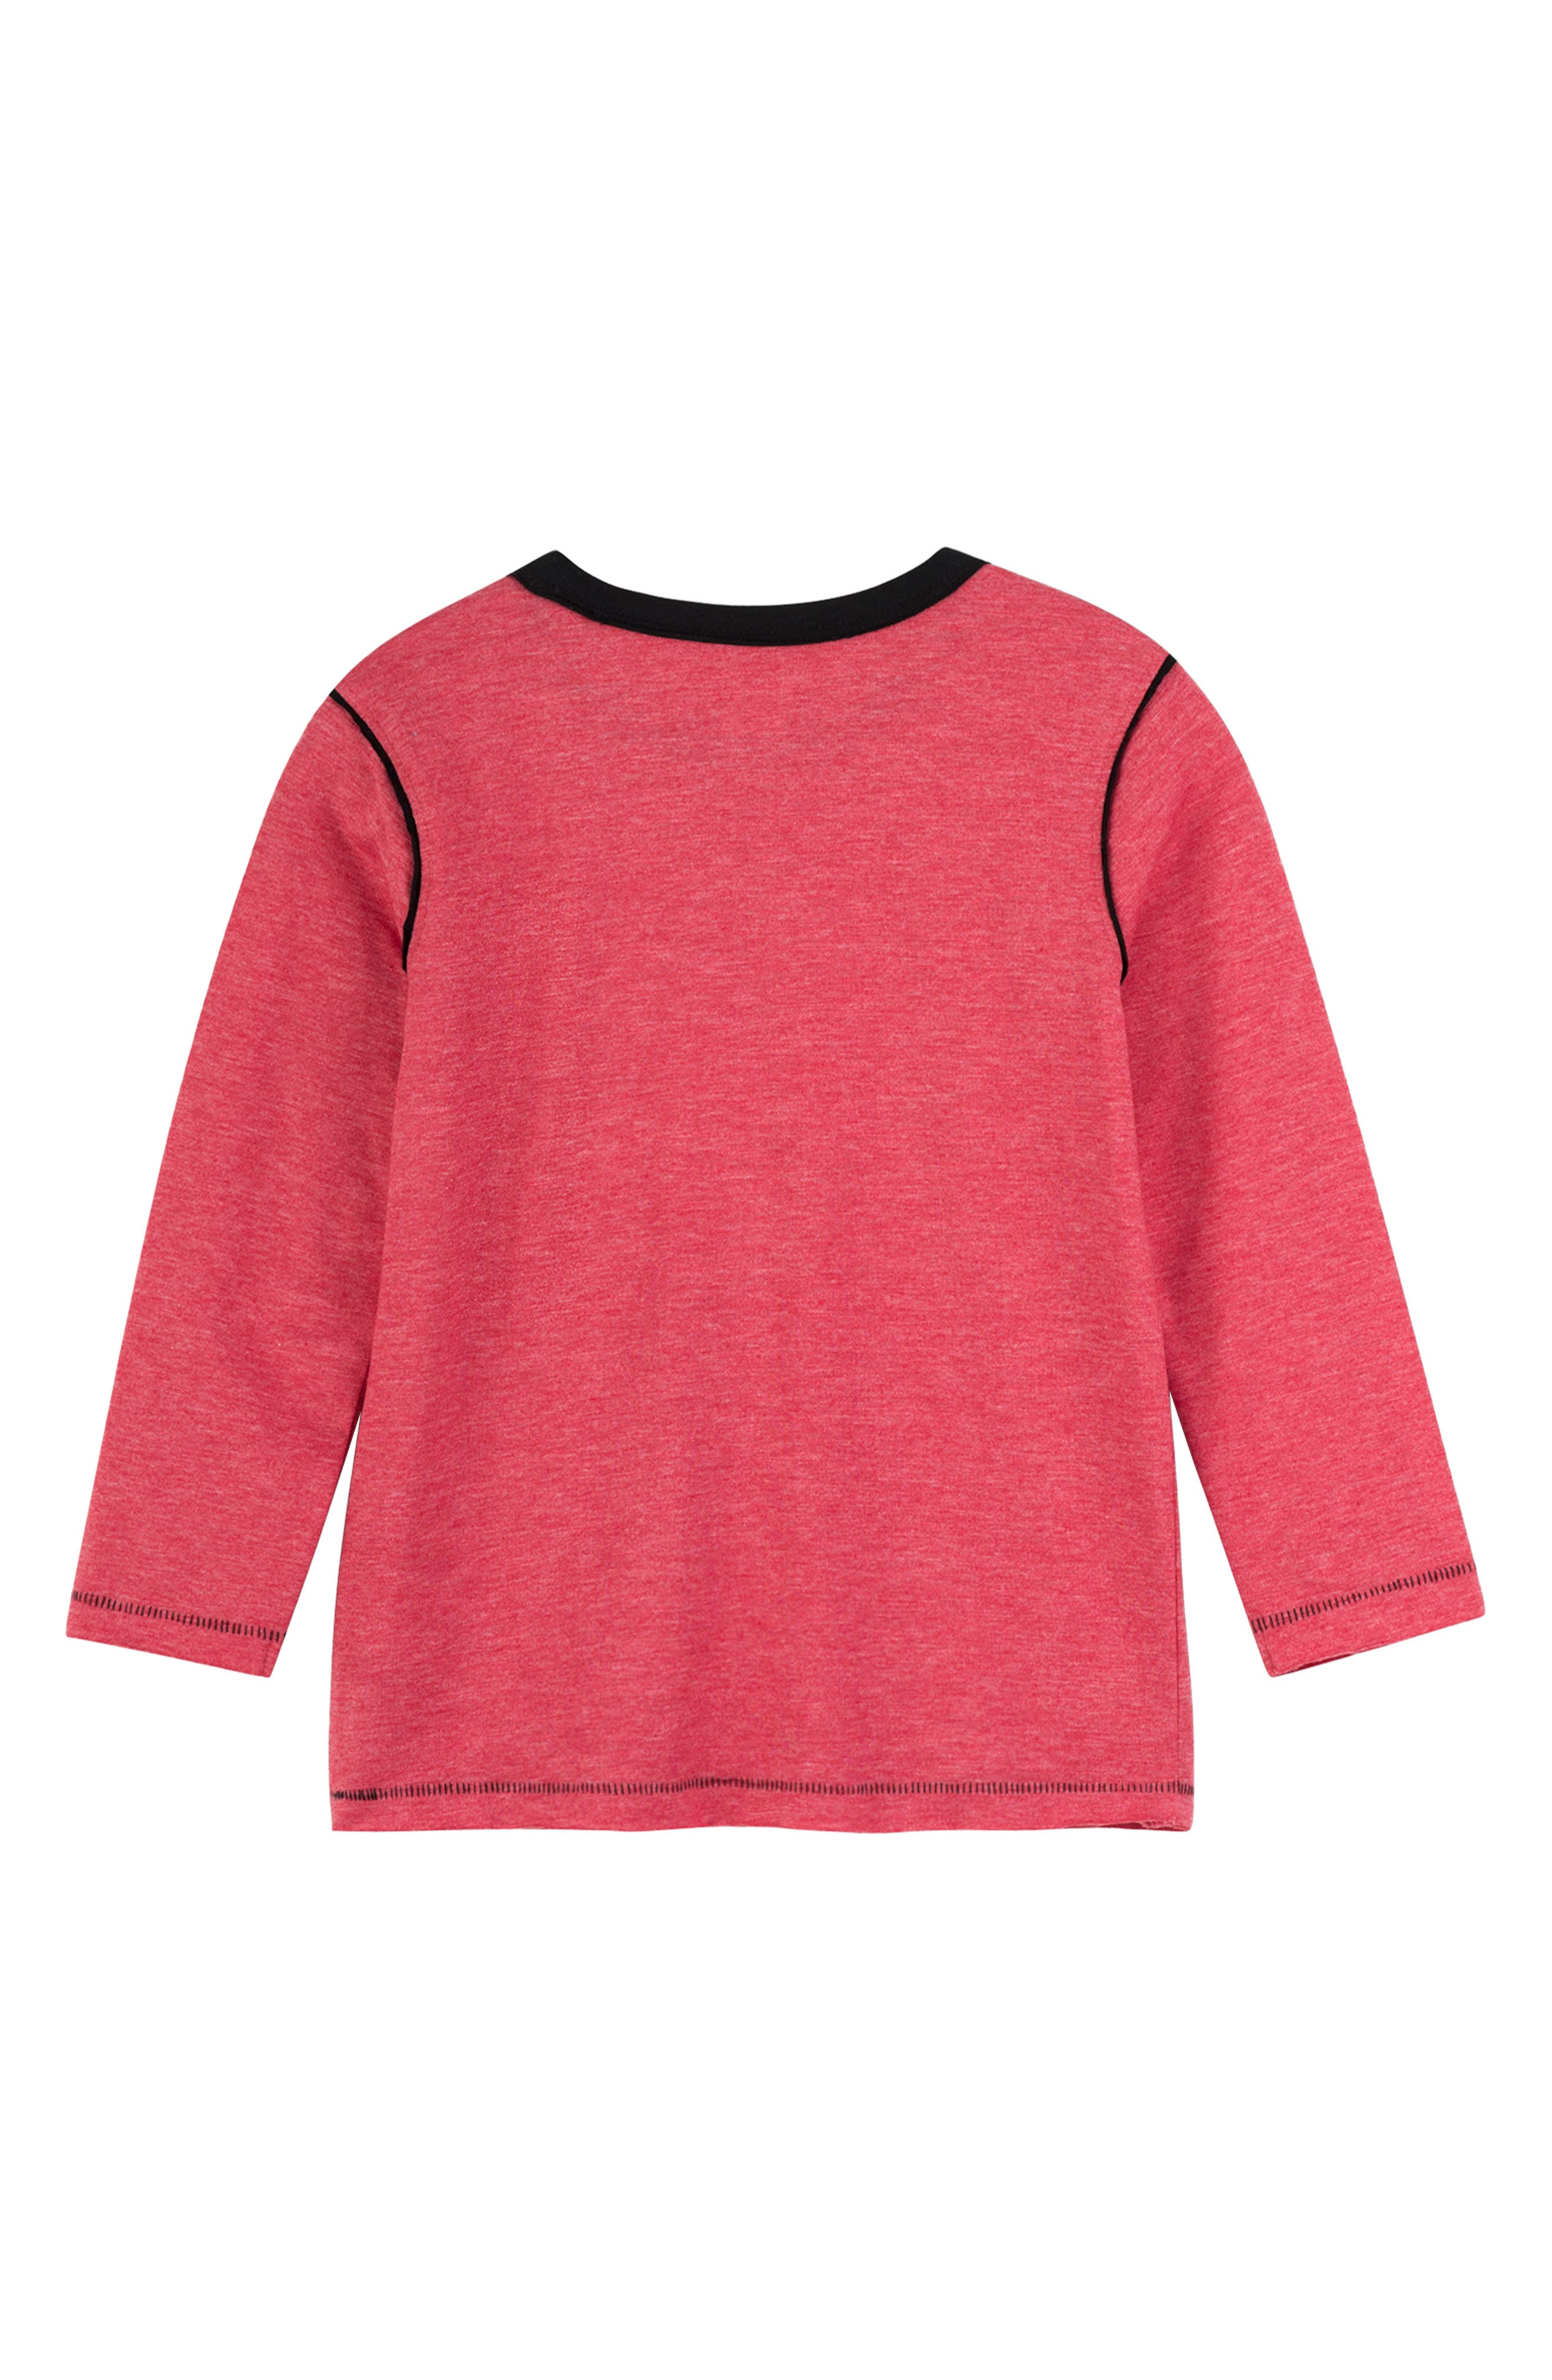 Long Sleeve T-Shirt,                             Alternate thumbnail 2, color,                             STAY COOL